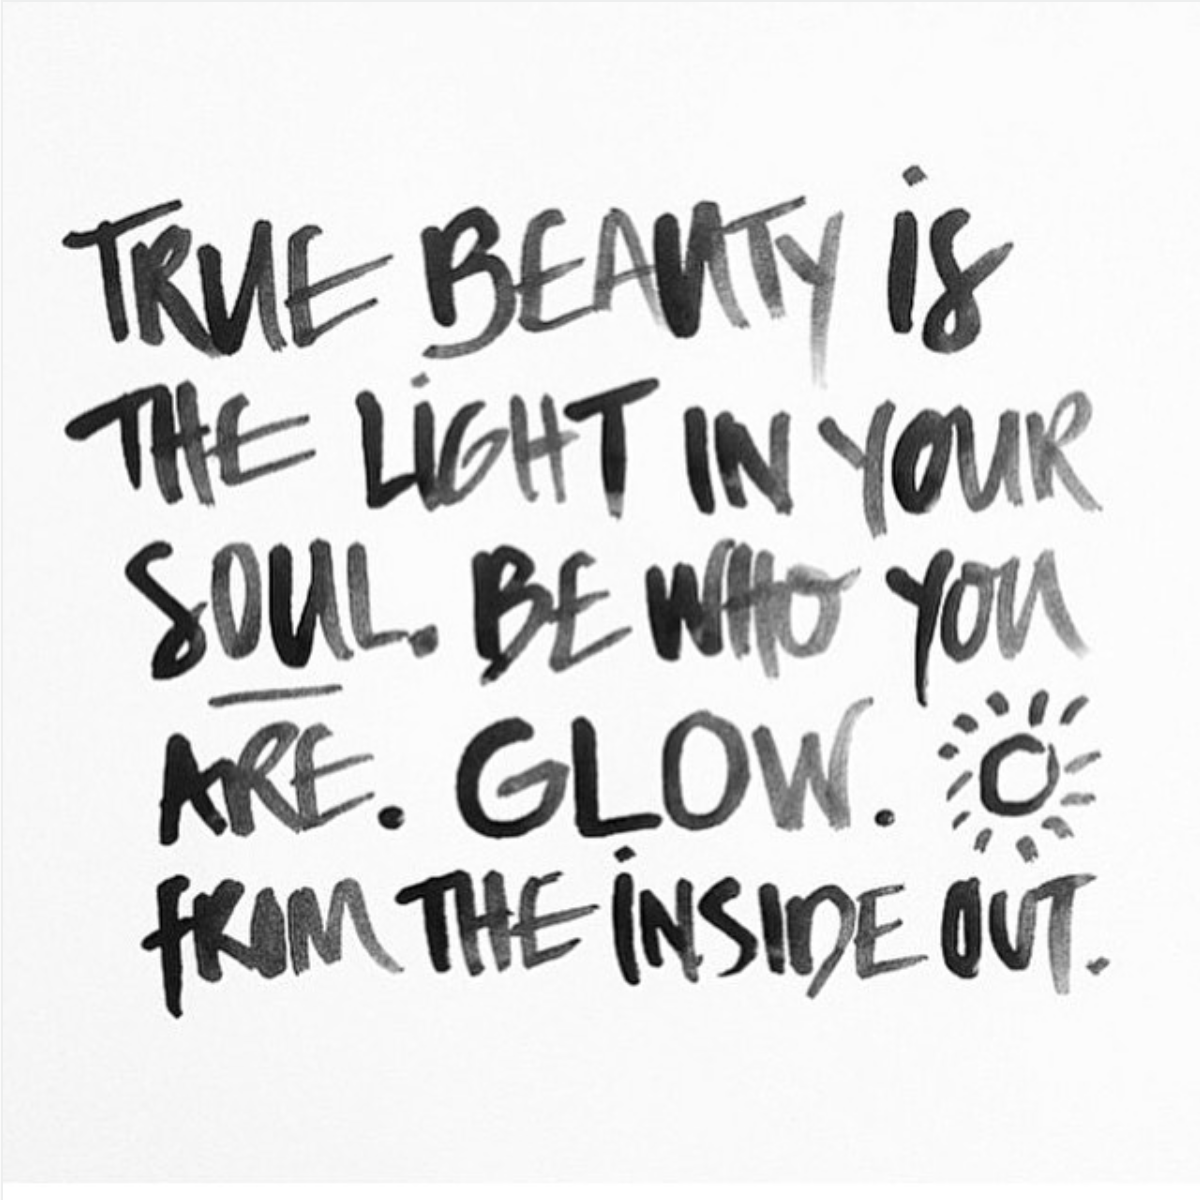 True beauty is the light in your soul. Be who you are ...